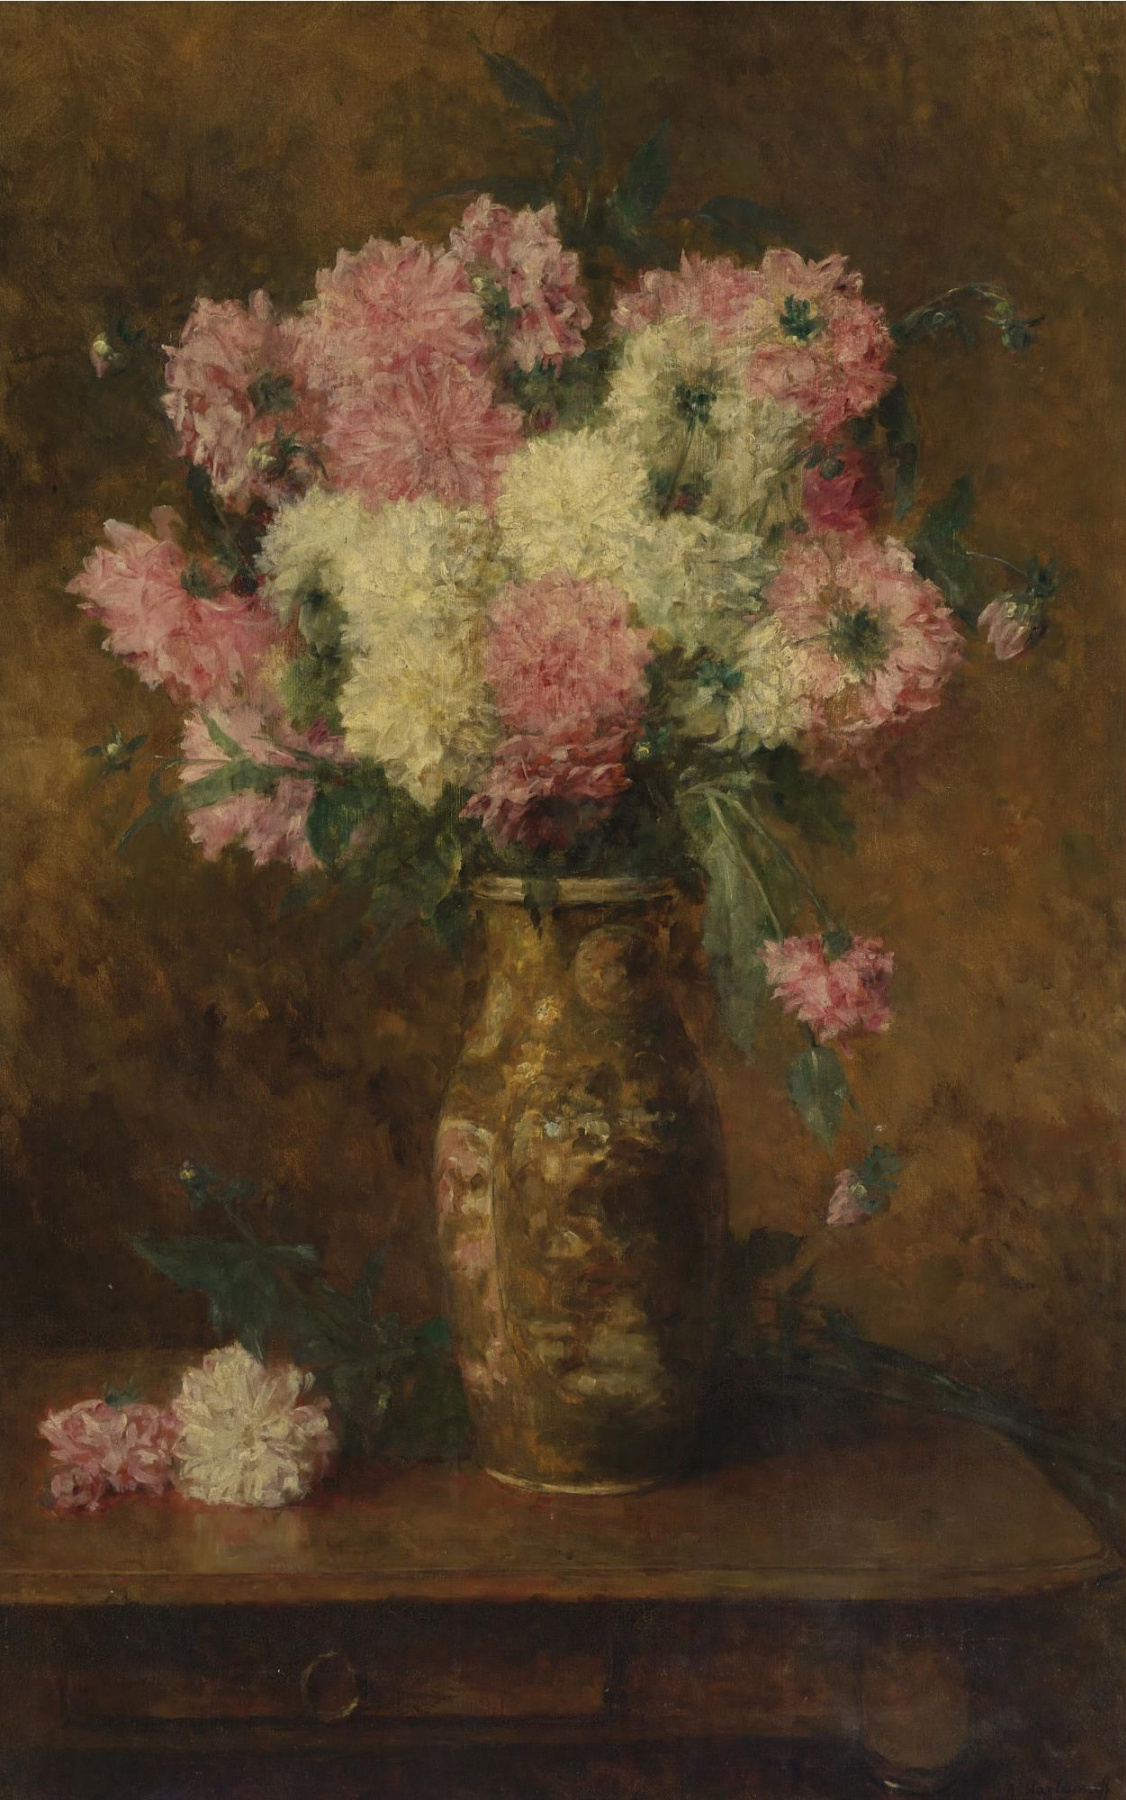 Alexey Alekseevich Kharlamov. Vase with Flowers.